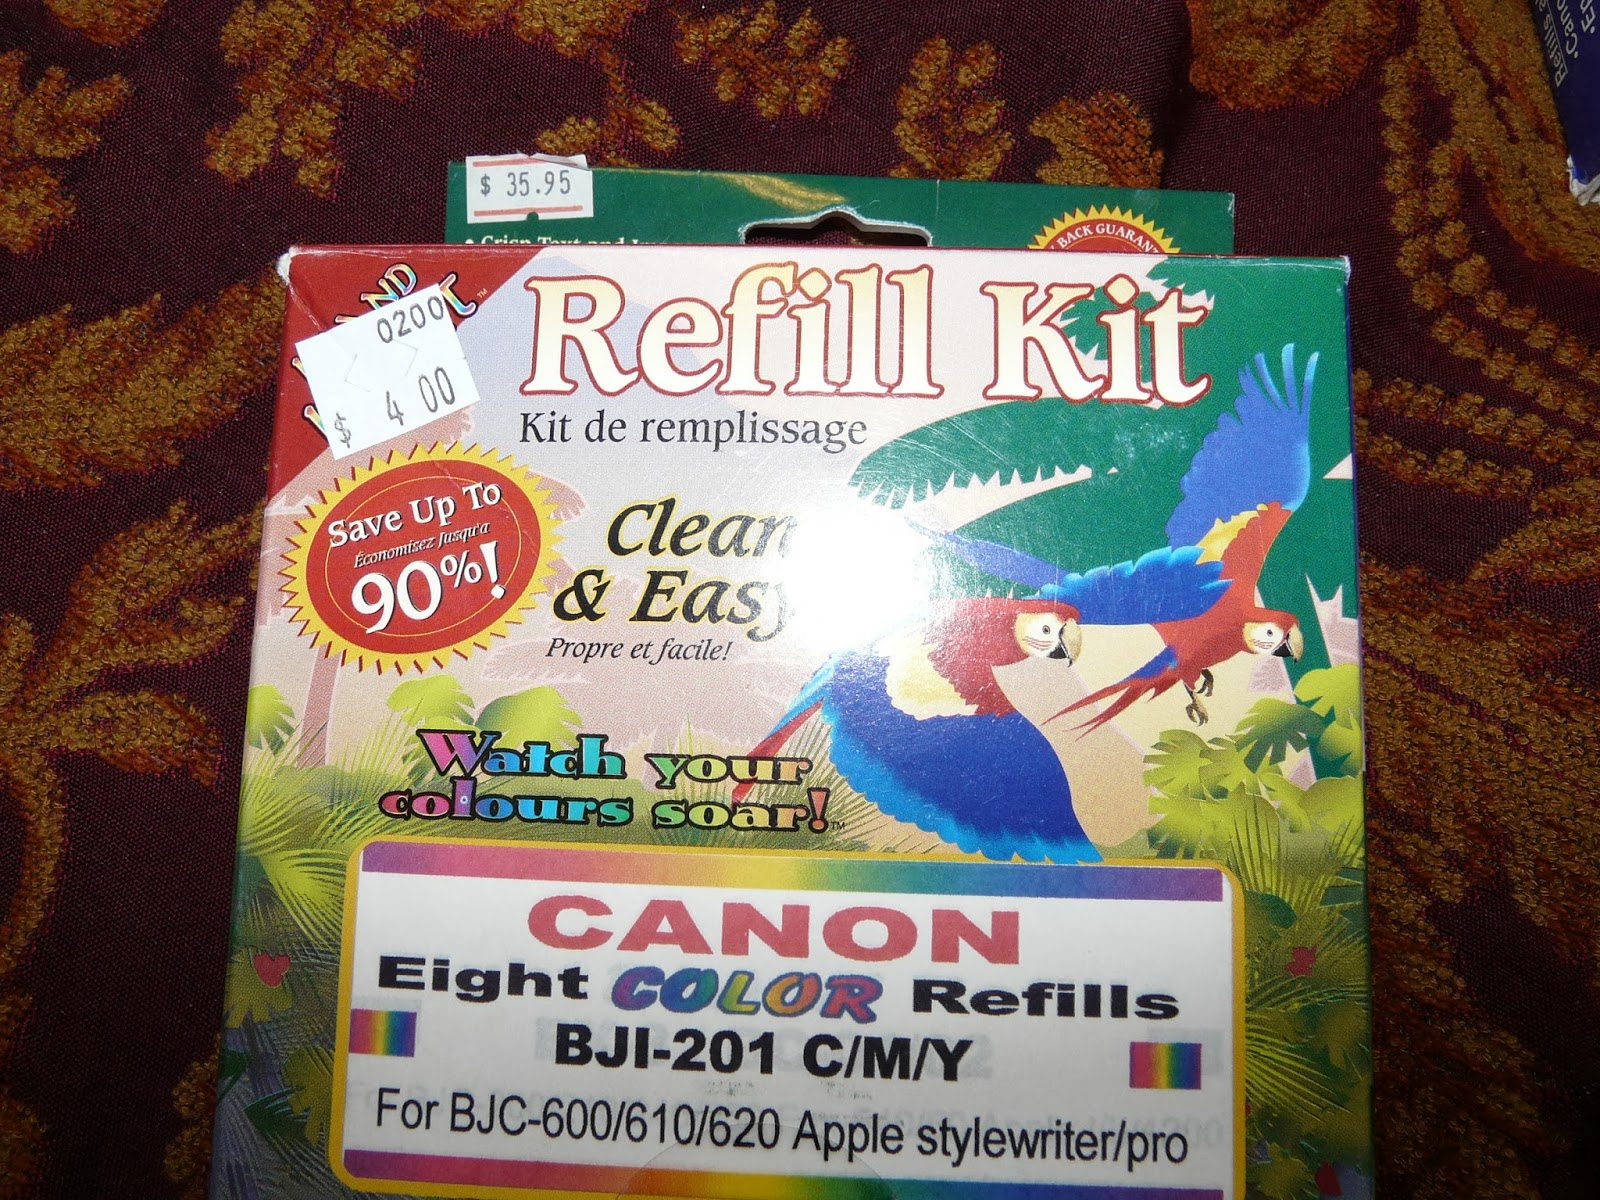 The secret is gratitude cheapest way to fill printer cartridges i started looking for refill kits at yard sales and second hand stores when i was going through my court cases over the years for my divorce solutioingenieria Image collections